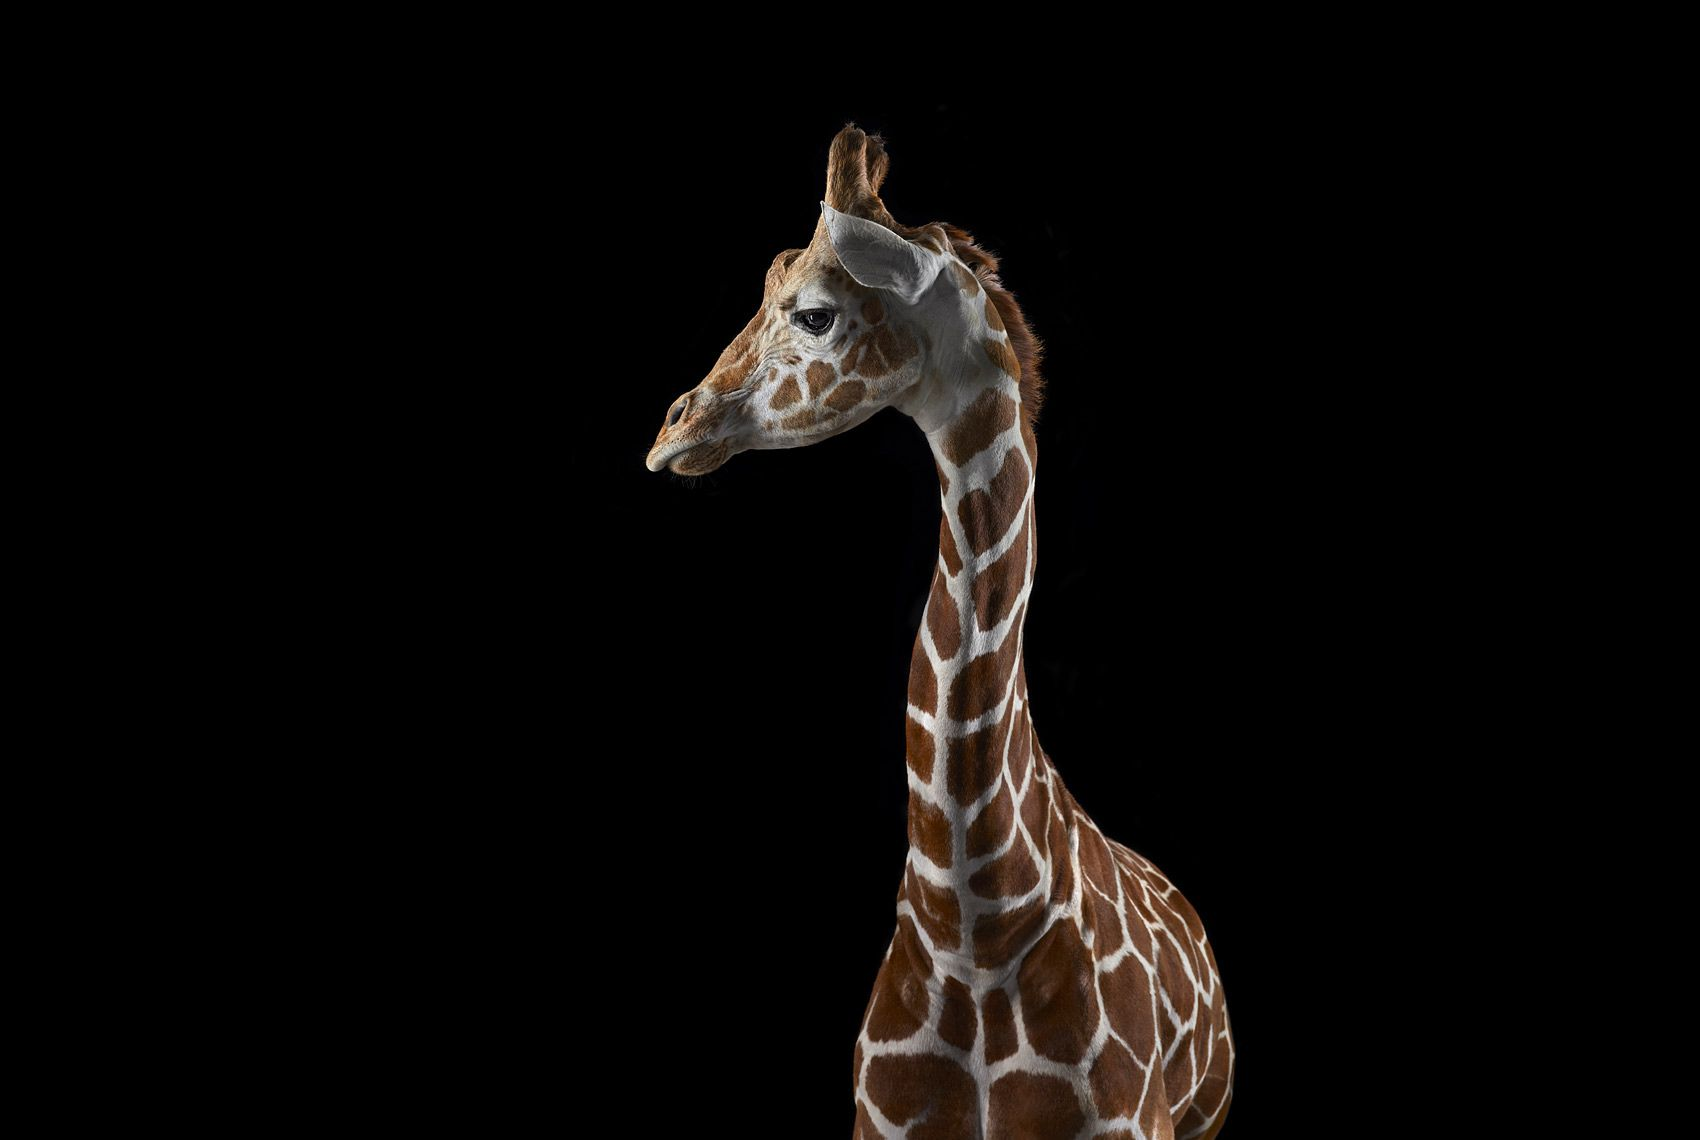 Giraffe #3, Los Angeles, CA, 2011